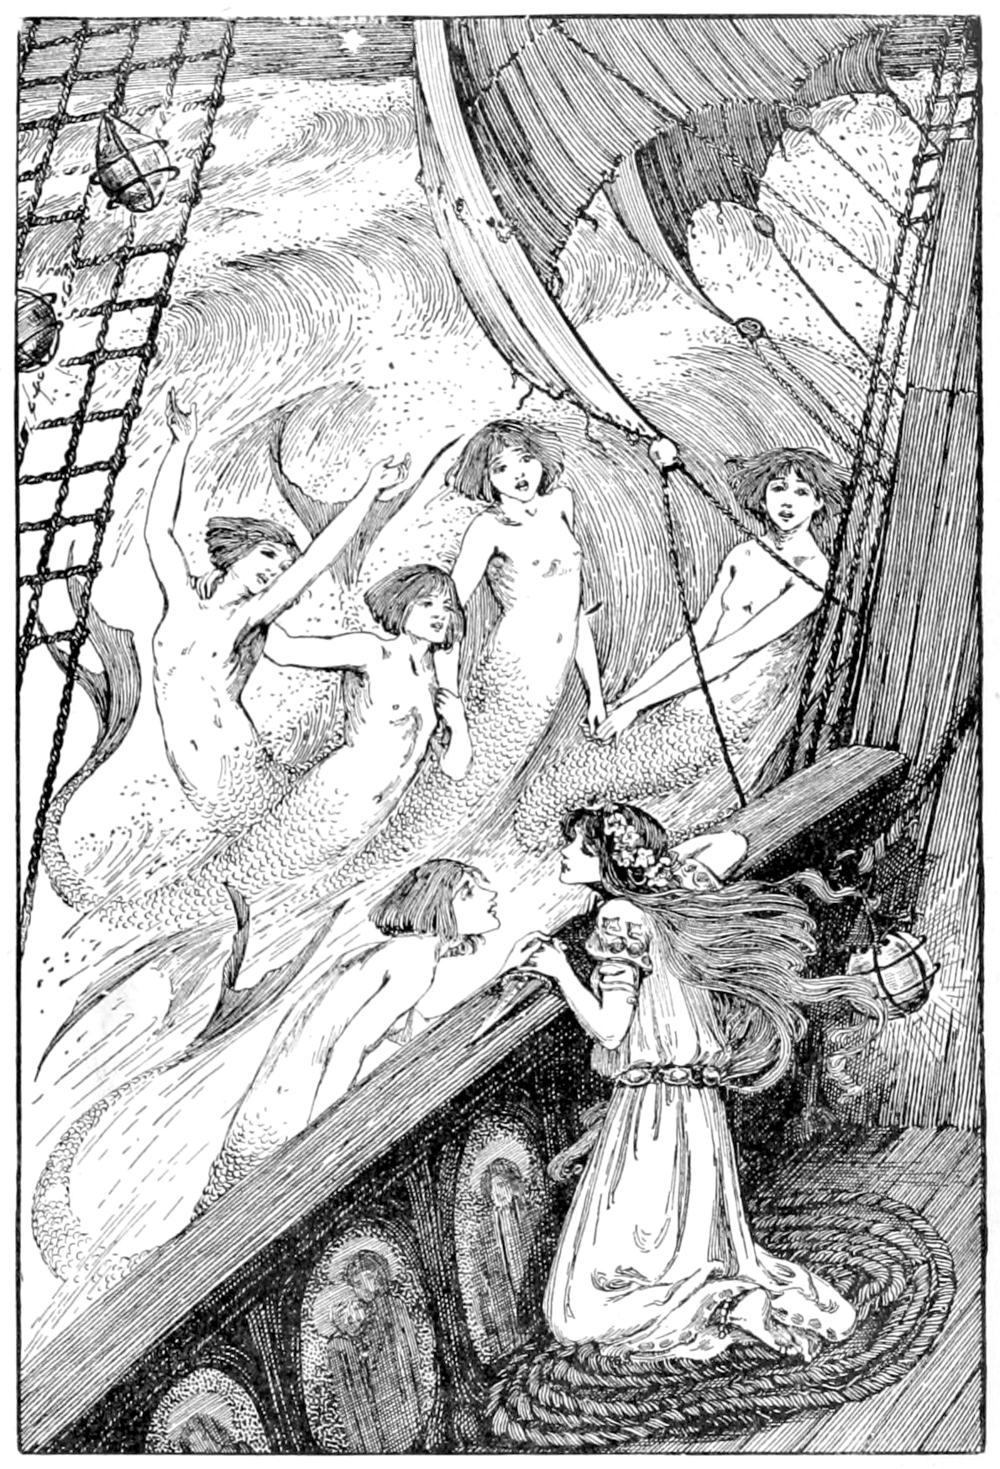 Illustration in a collection of Andersons Fairy tales